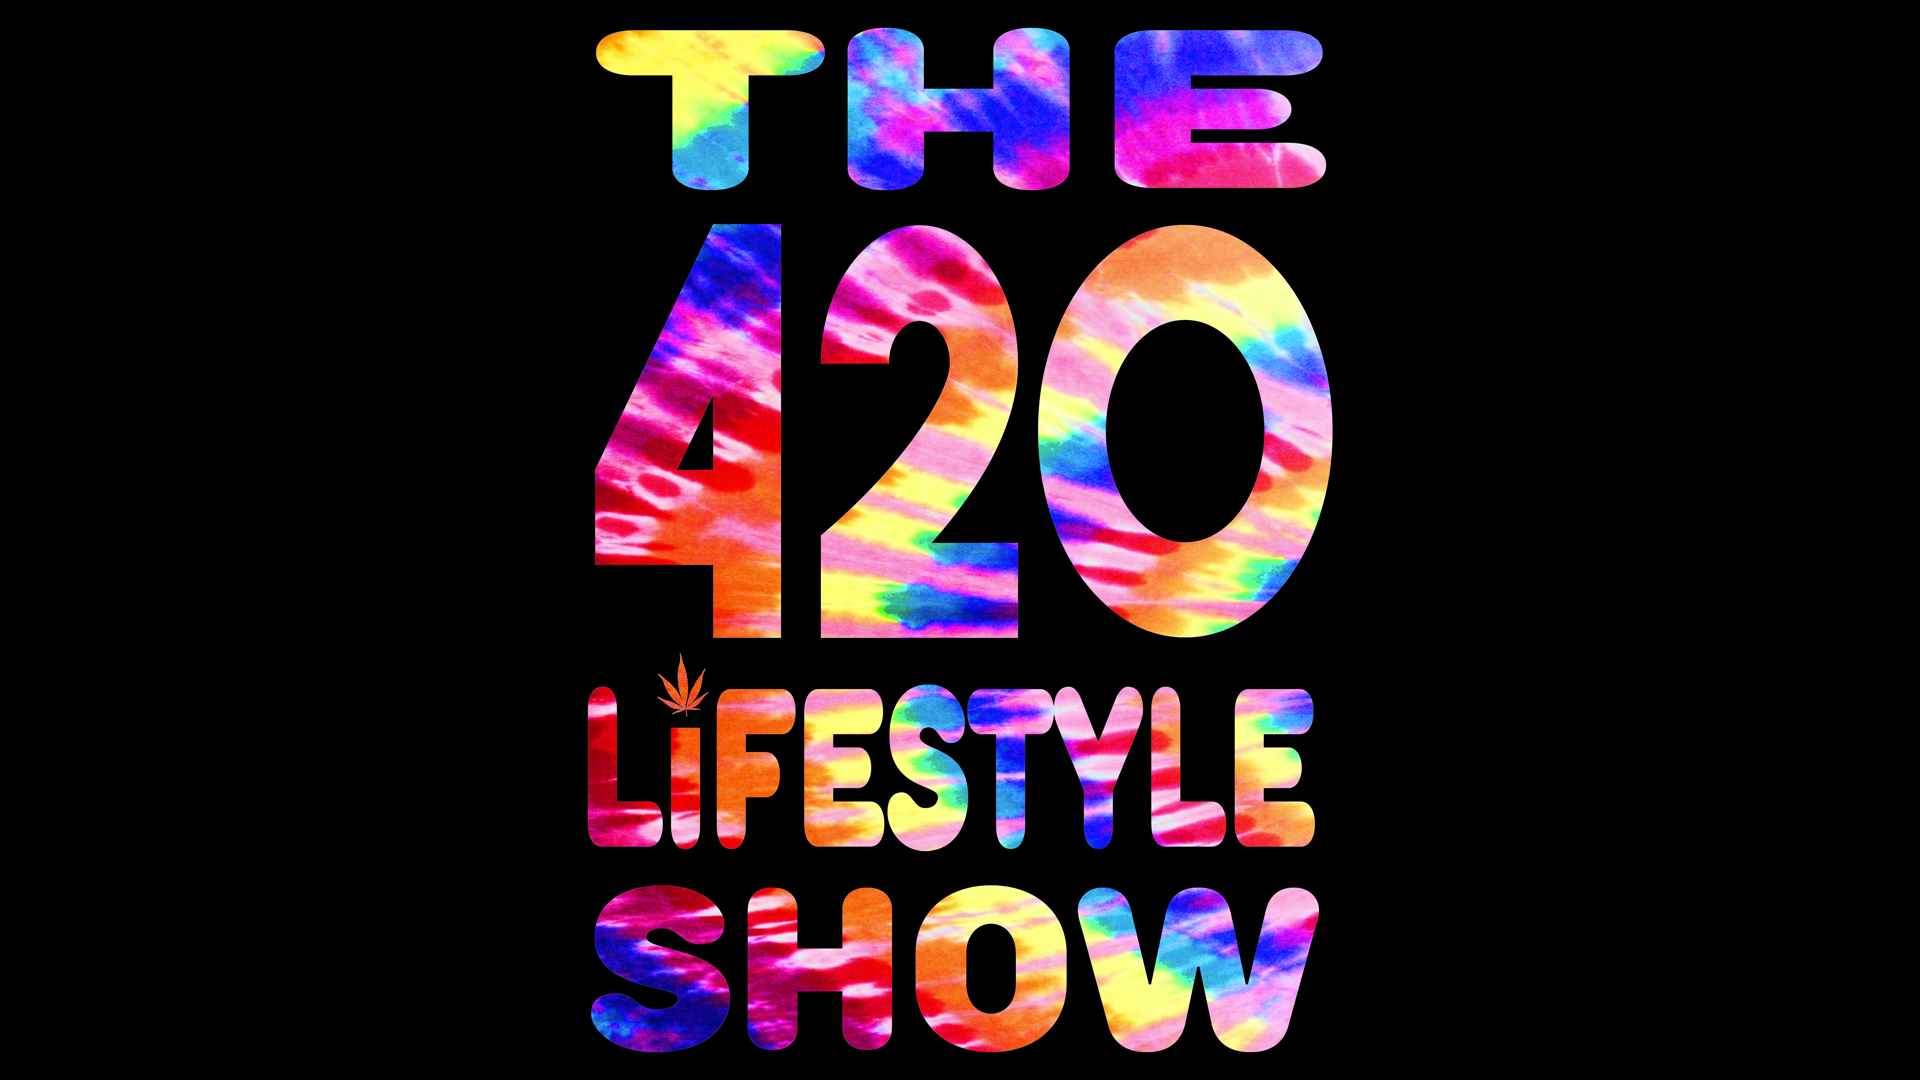 The 420 Lifestyle Show: Marijuana Is My Valentine